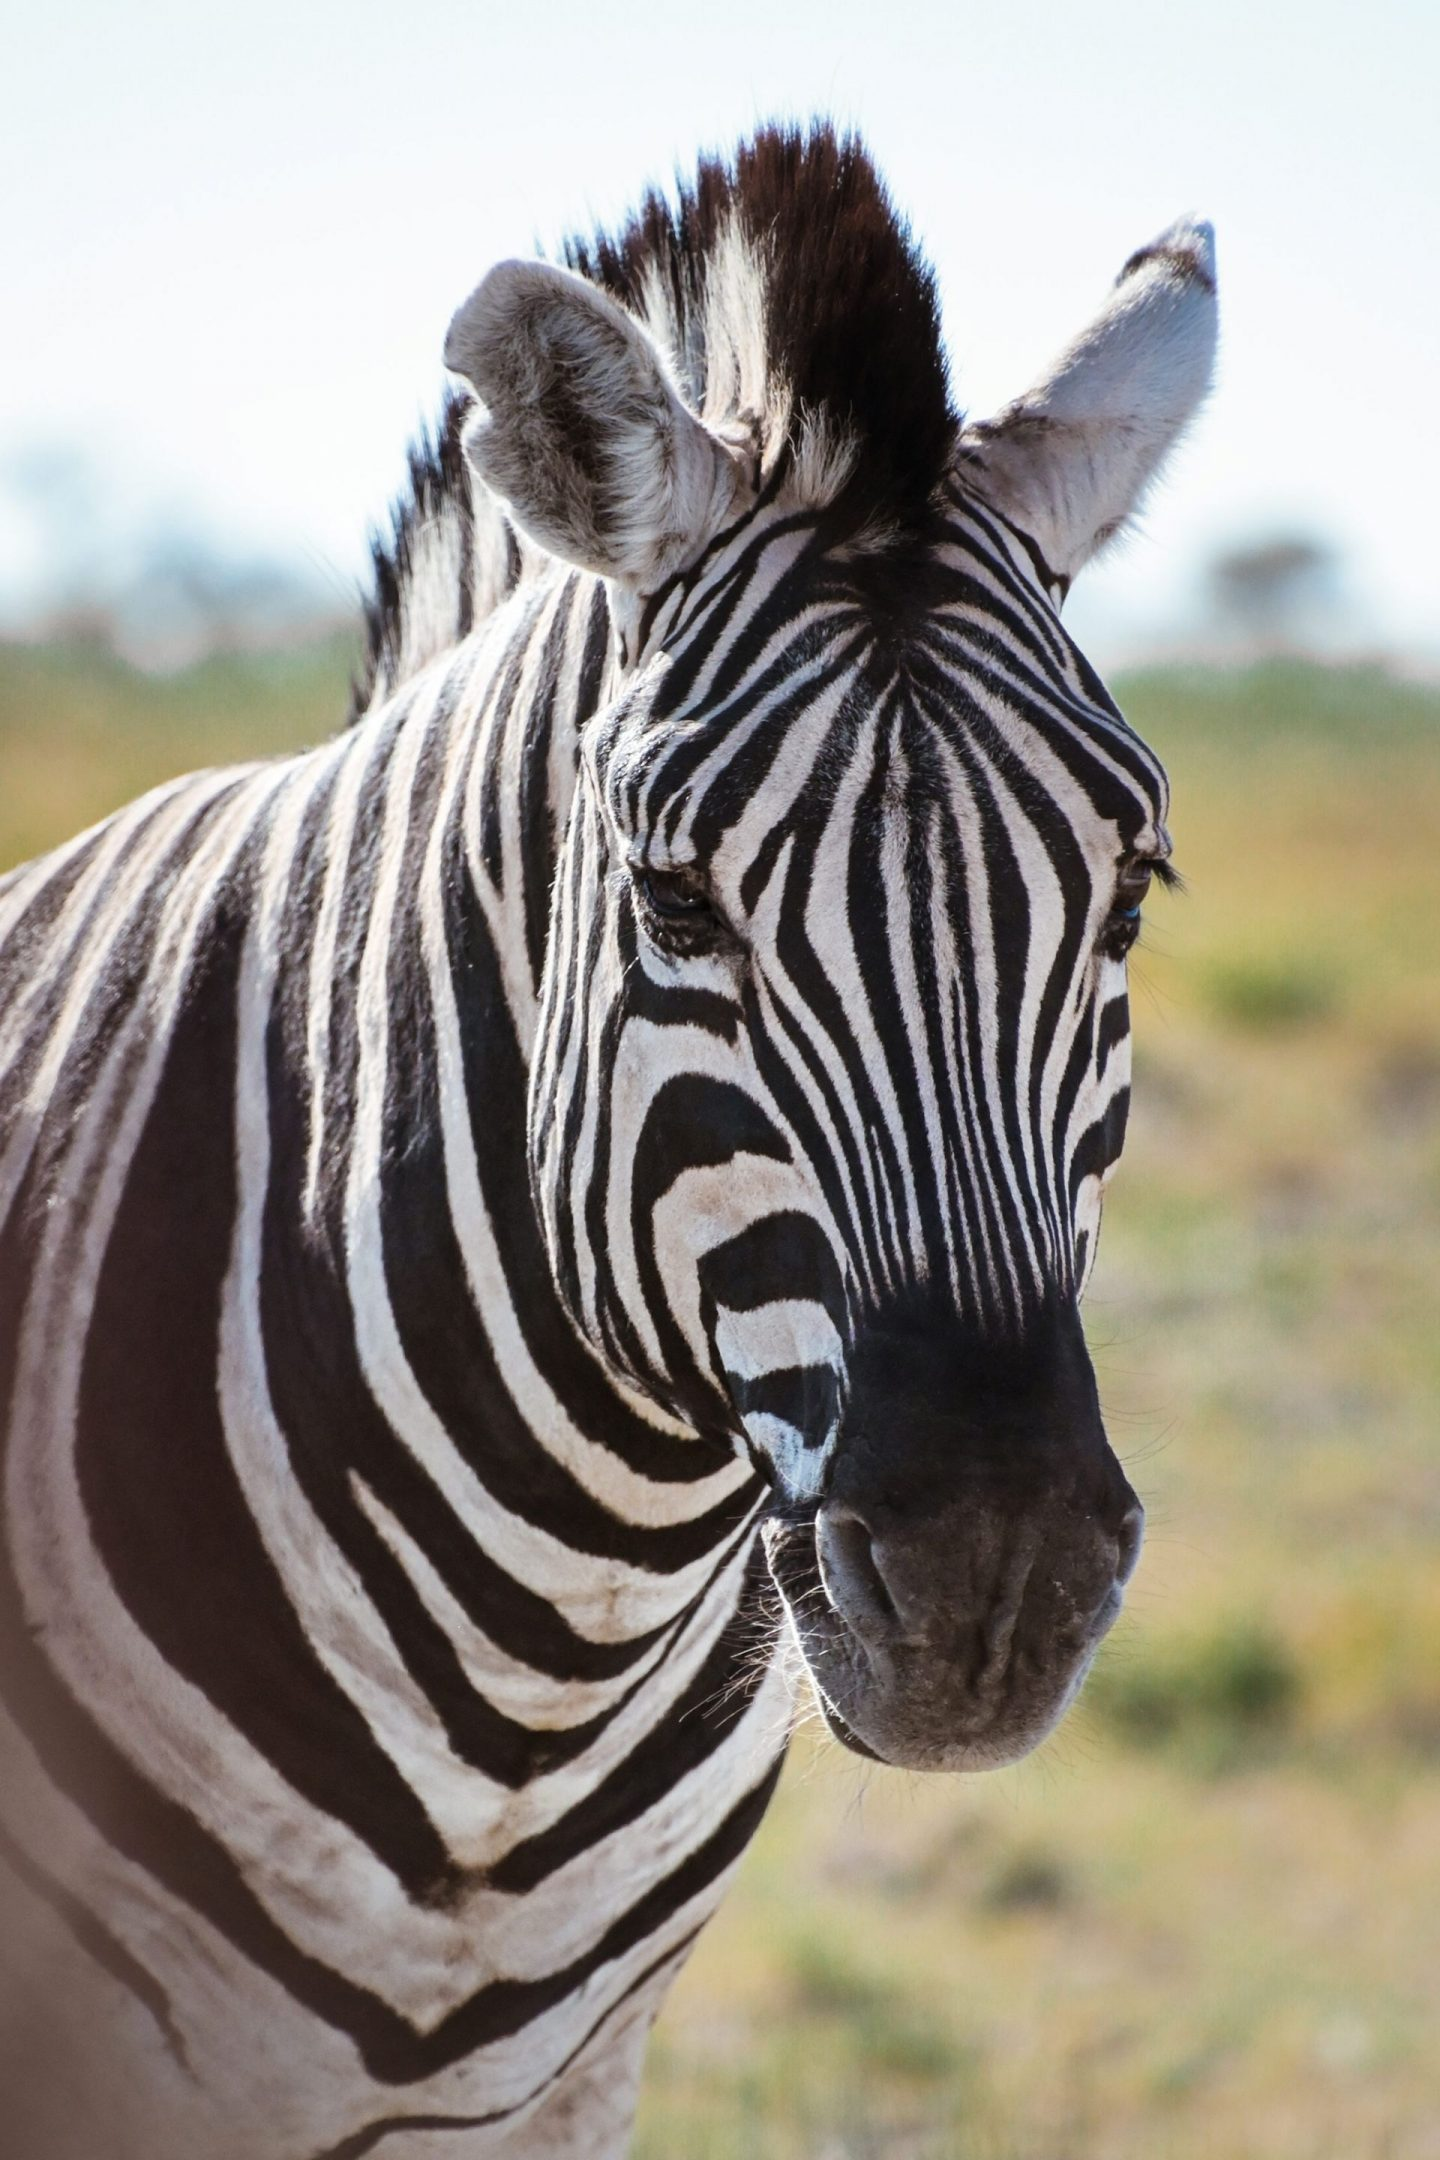 Zebra portrait from Etosha National Park, Namibia